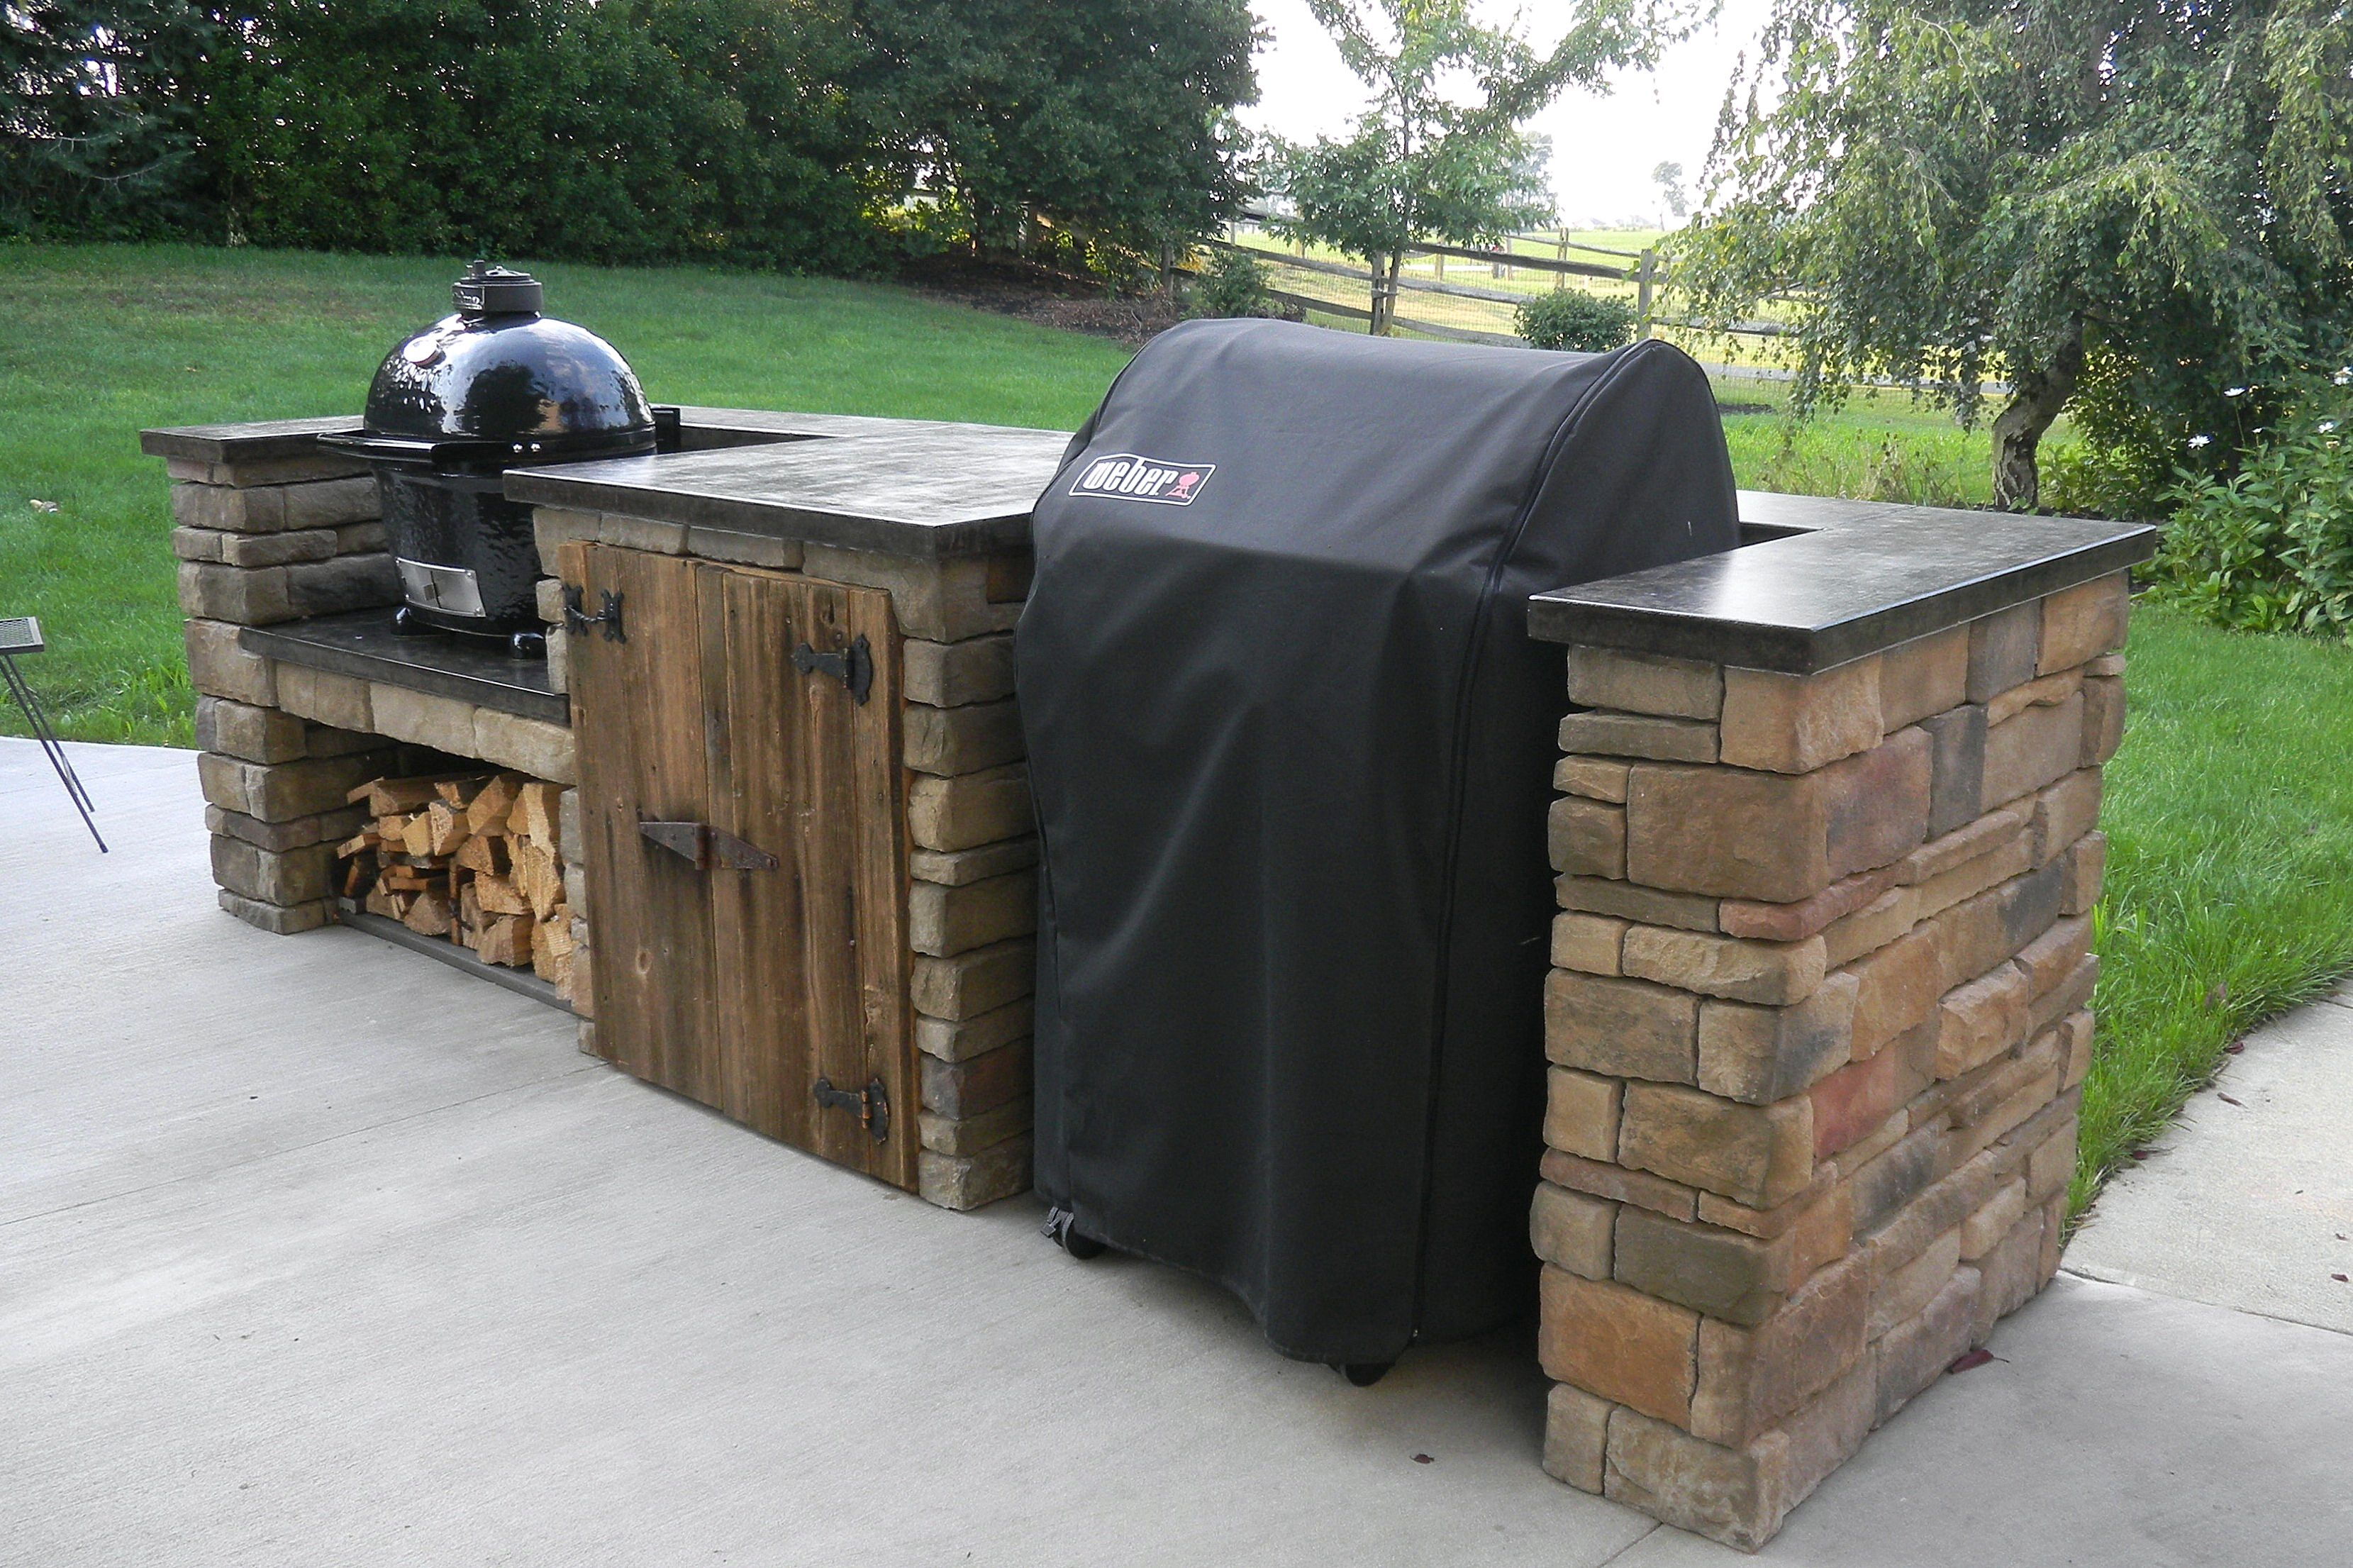 New Home For Primo Grill And Weber Grill My Outdoor Grill Center And Patio Diy Pinterest